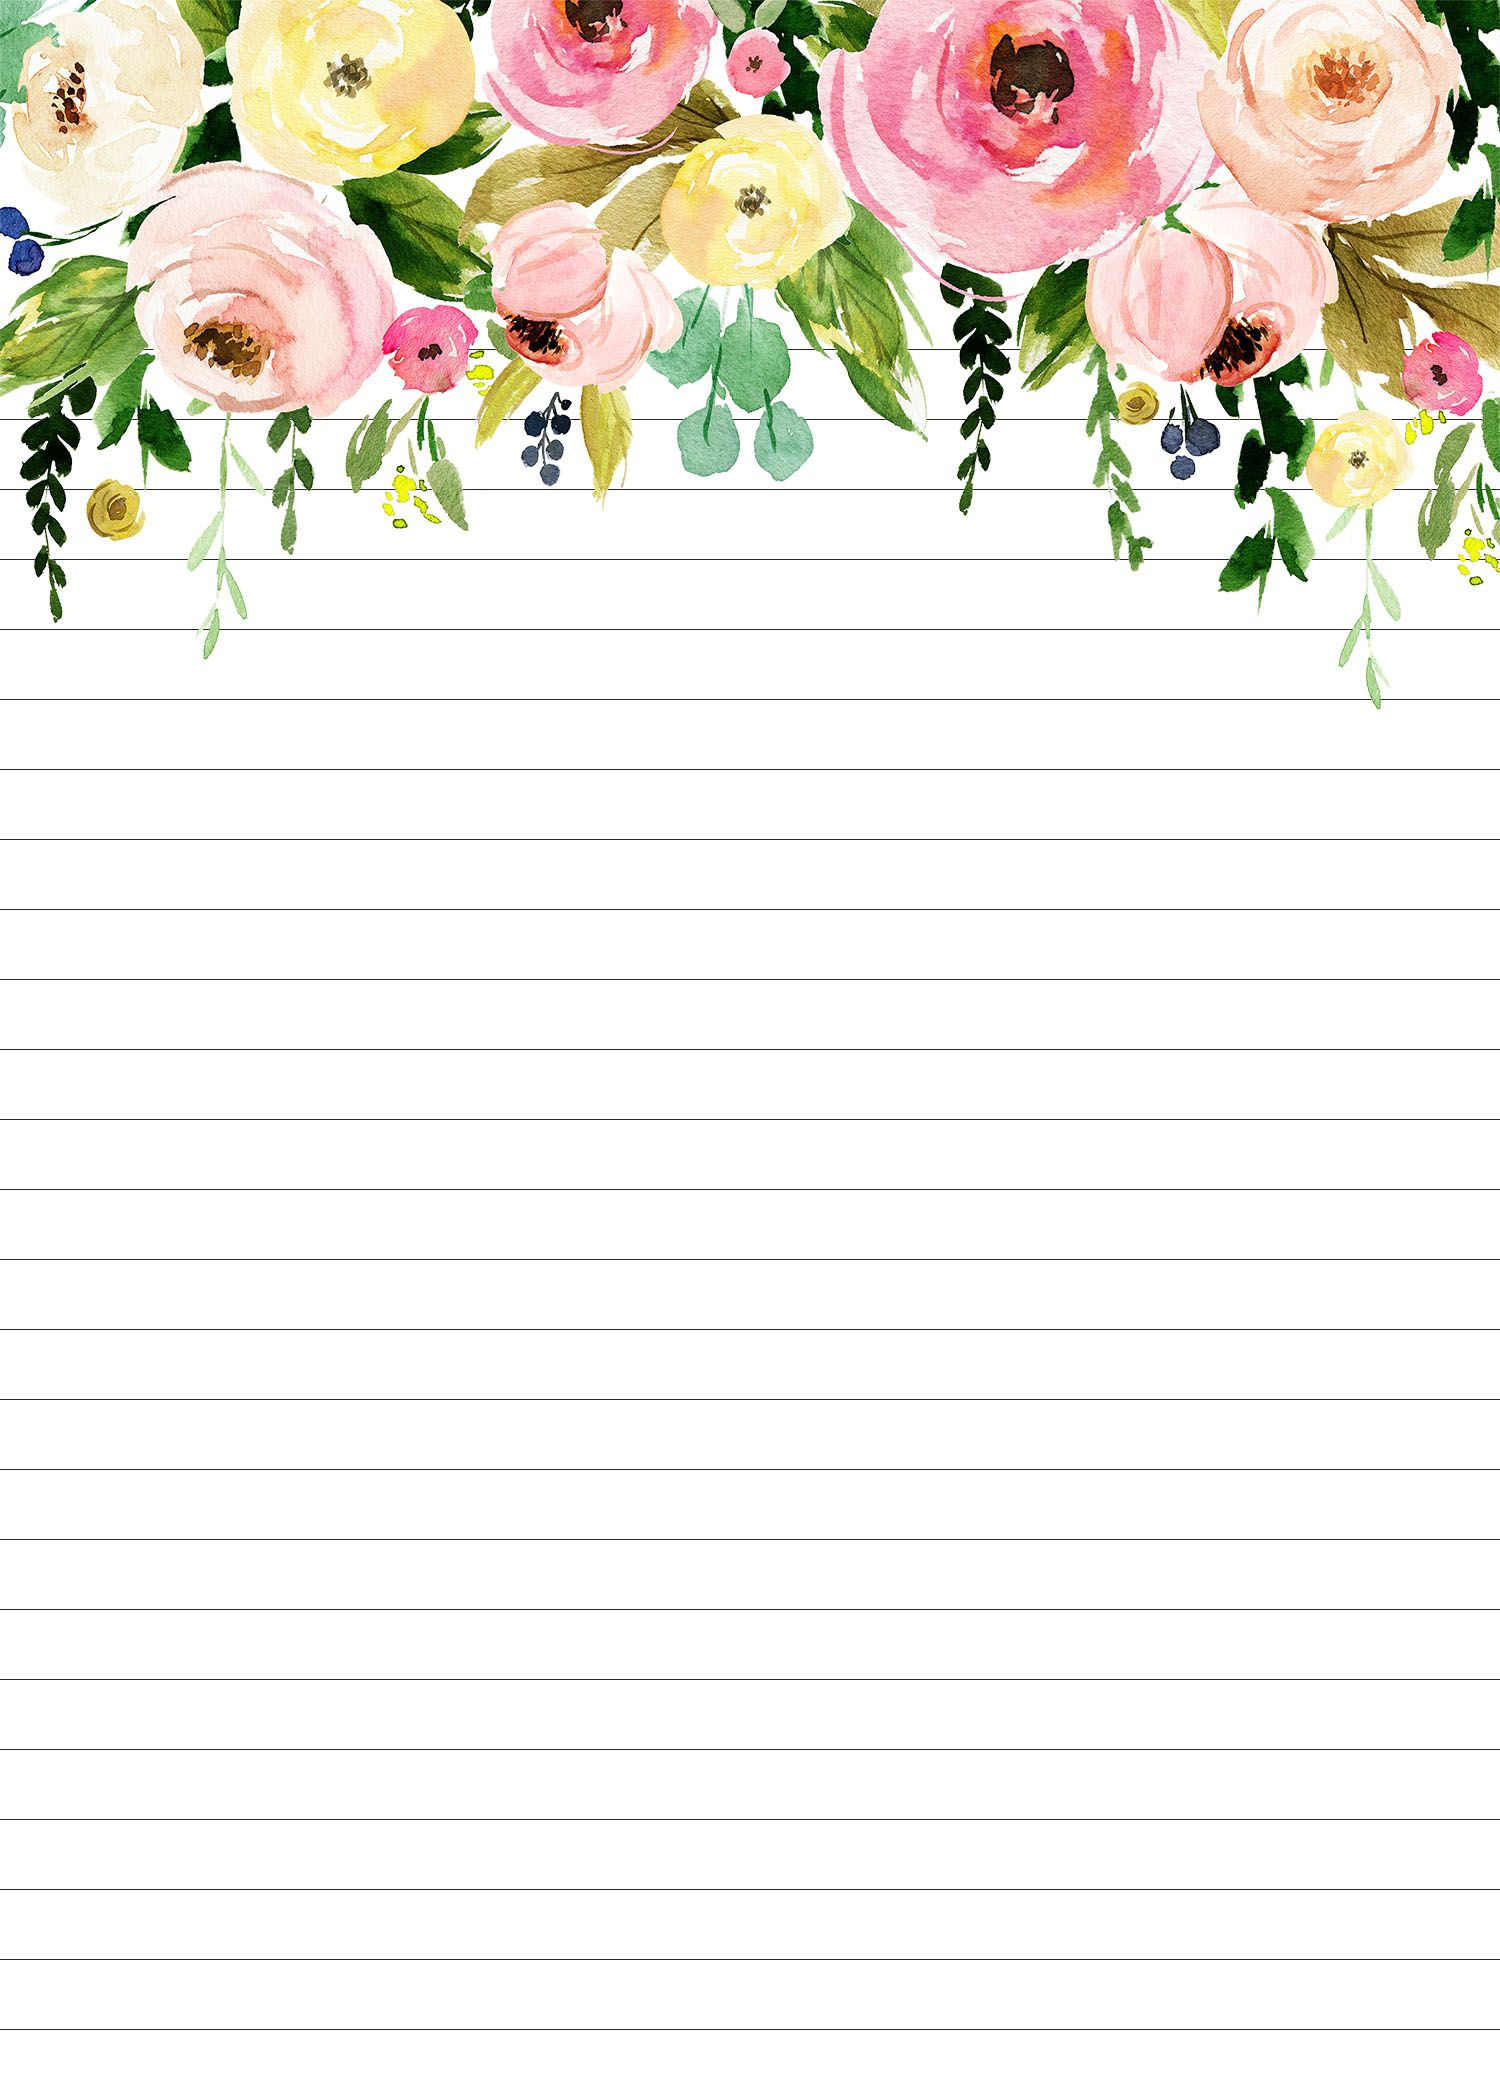 Free Printable 2019 5x7 Pretty Floral Calendar /// with ...